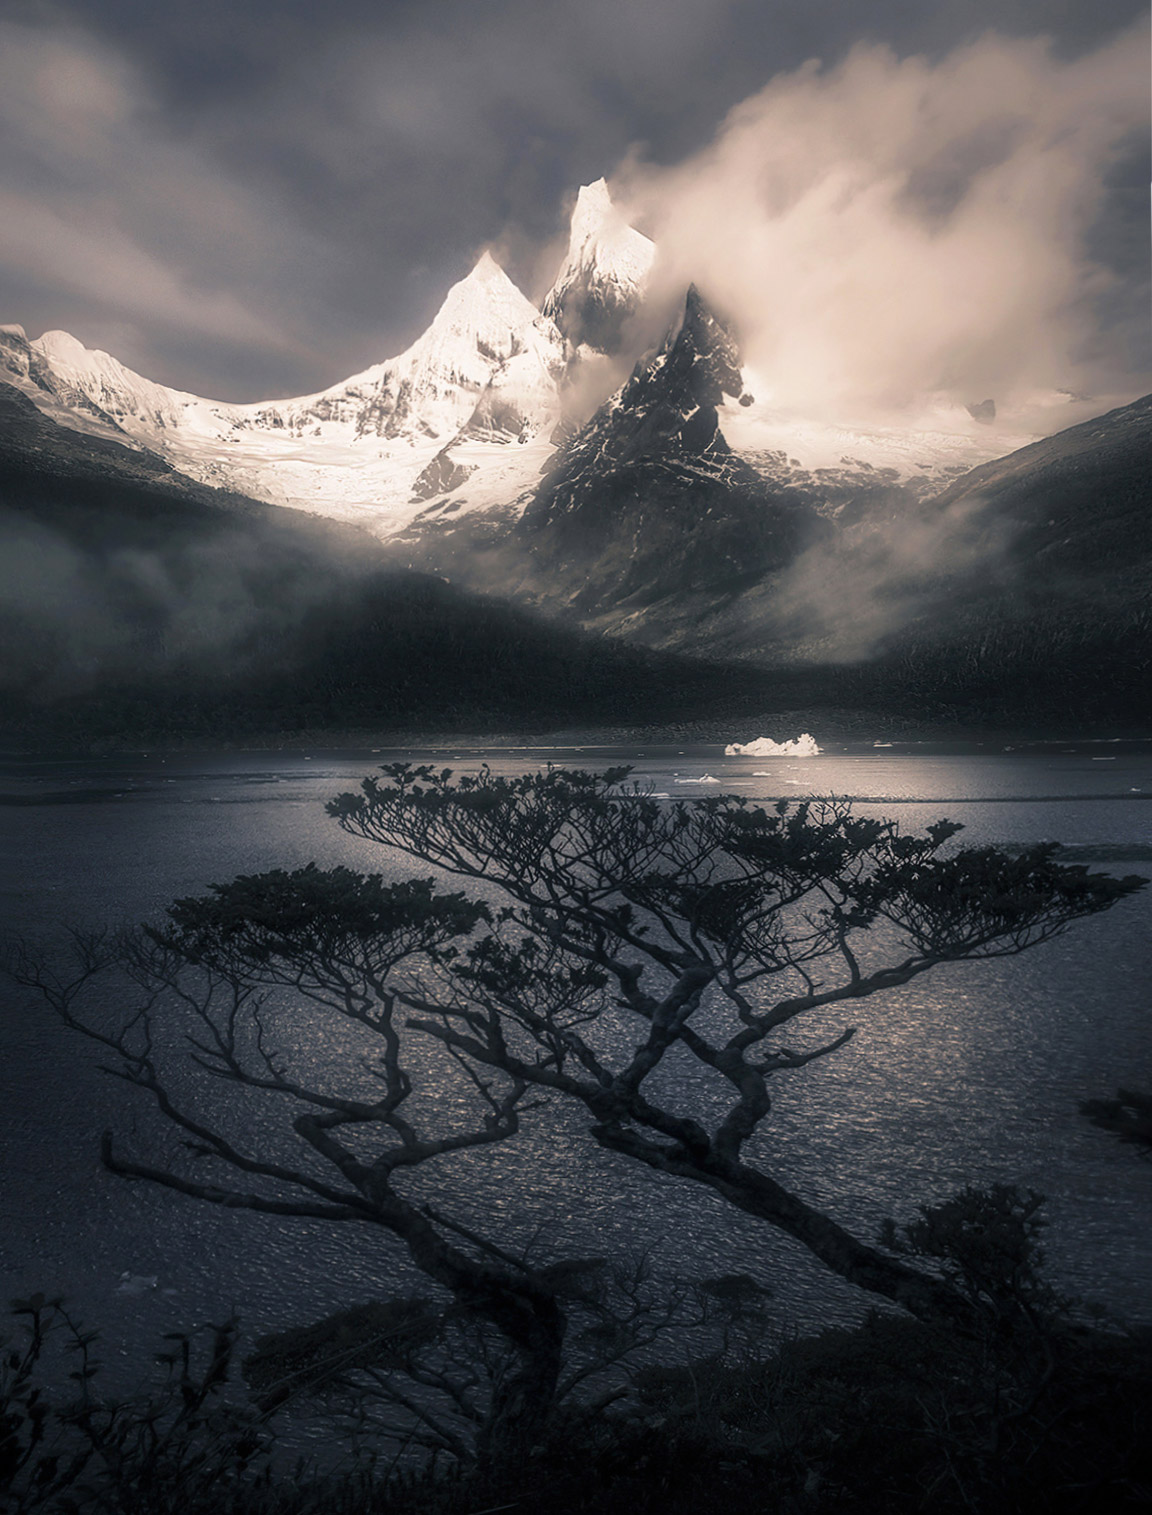 Incredible Coigue trees grow from the temperate rainforest that is the south Chilean Fiords. I scrambled ashore from our zodiac...